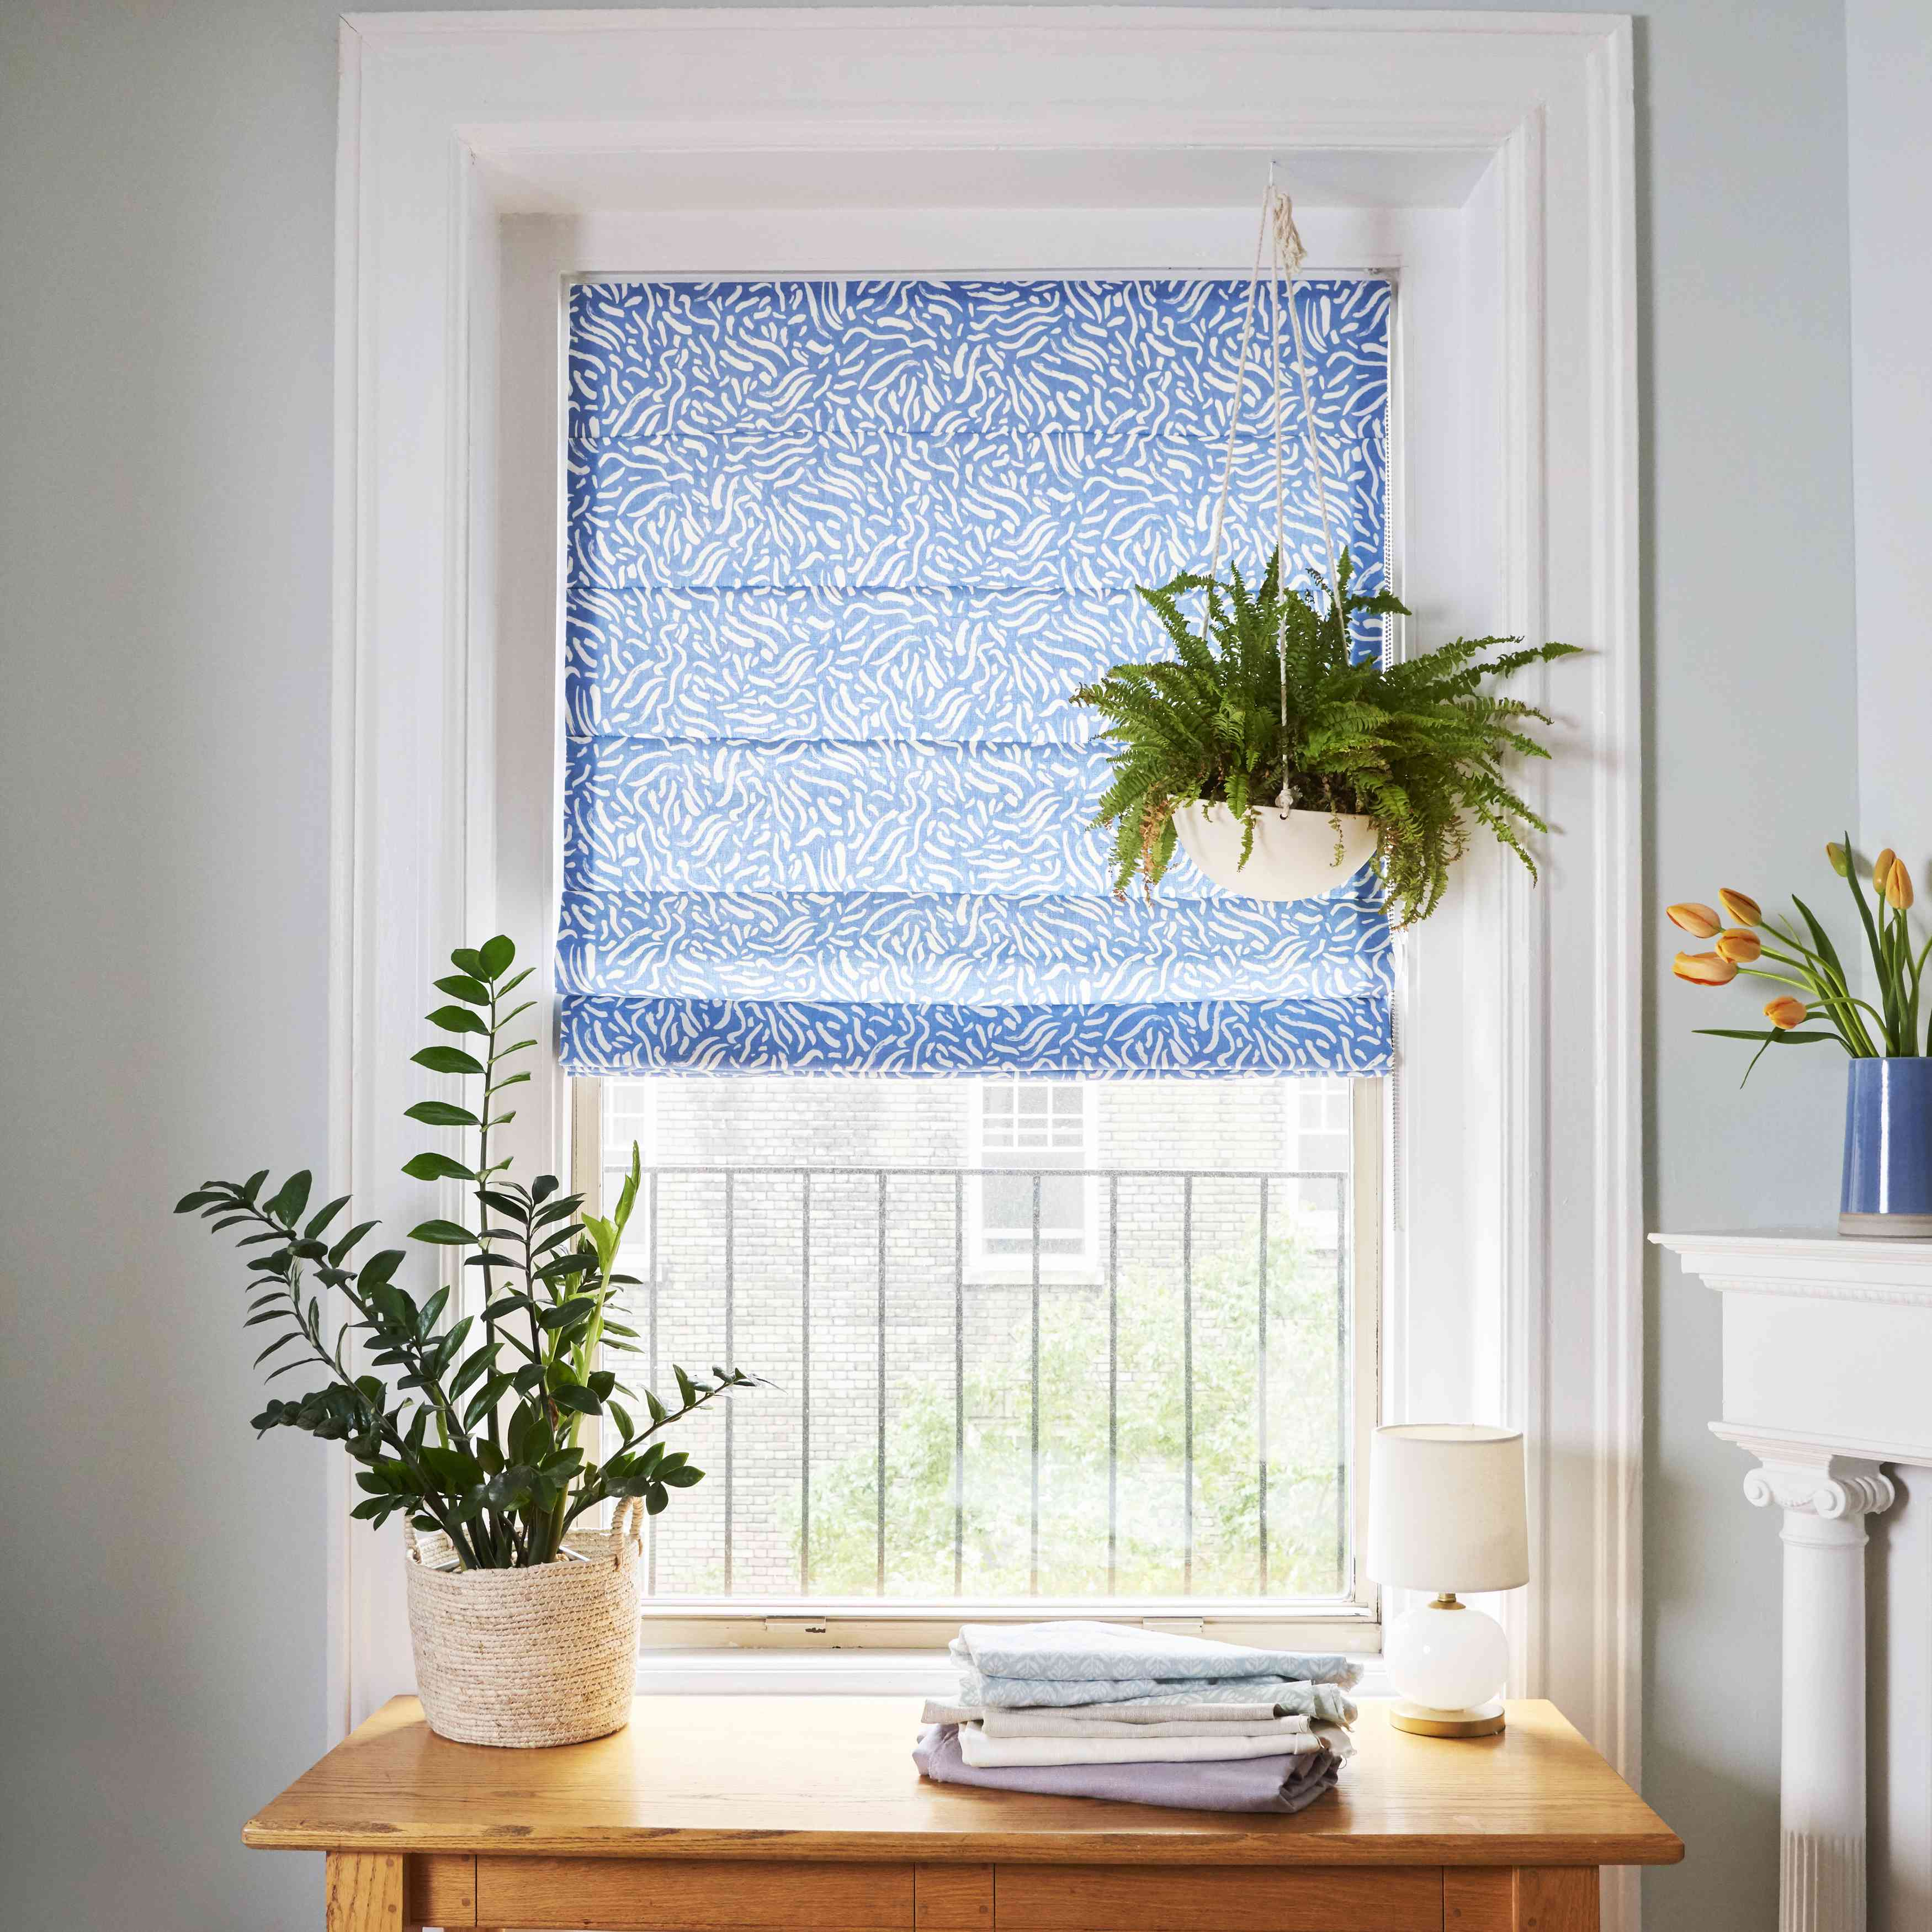 Chic window shade with hanging plant.